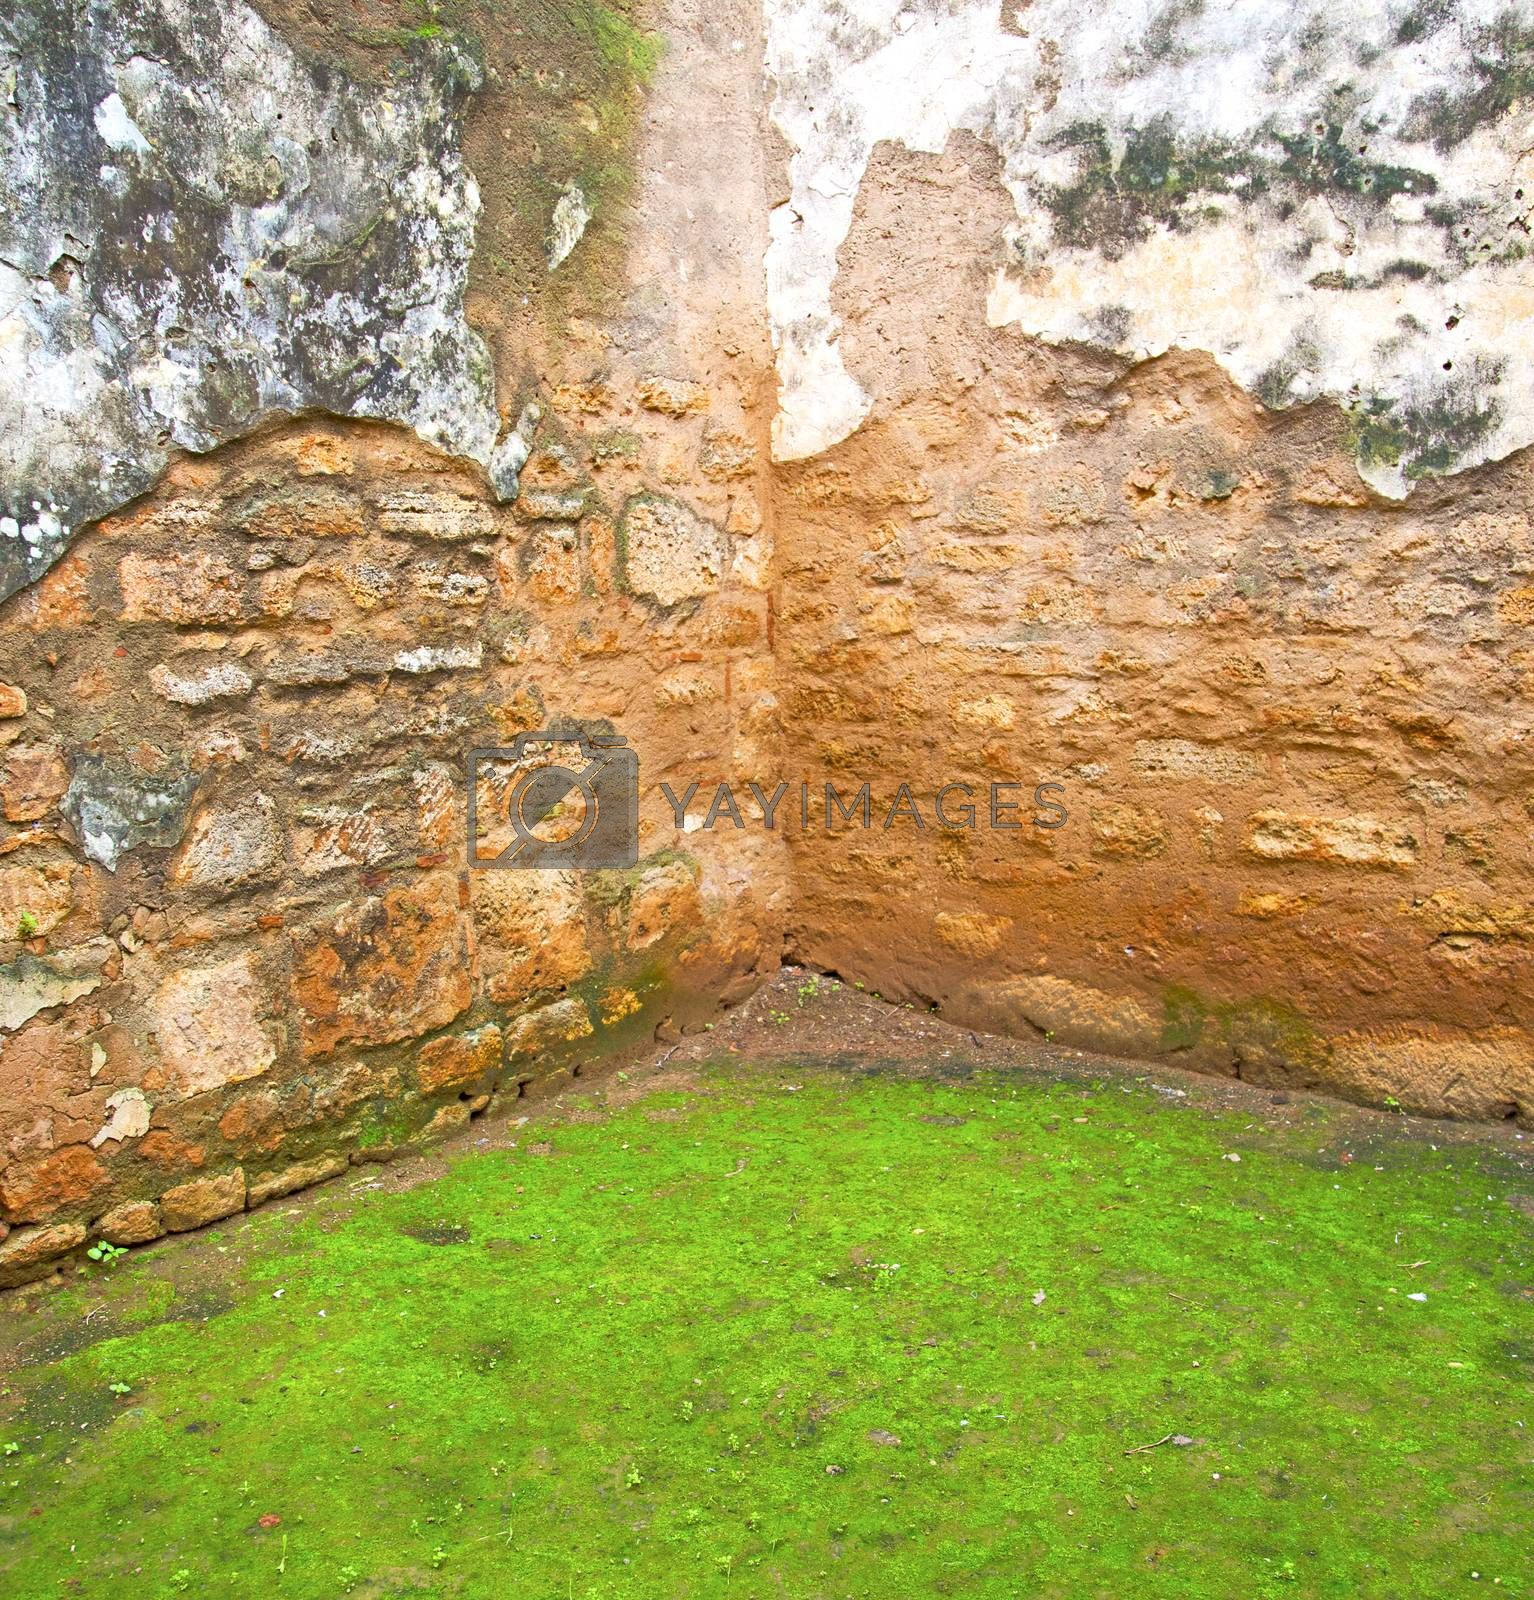 chellah  in morocco africa the old roman deteriorated monument a by lkpro